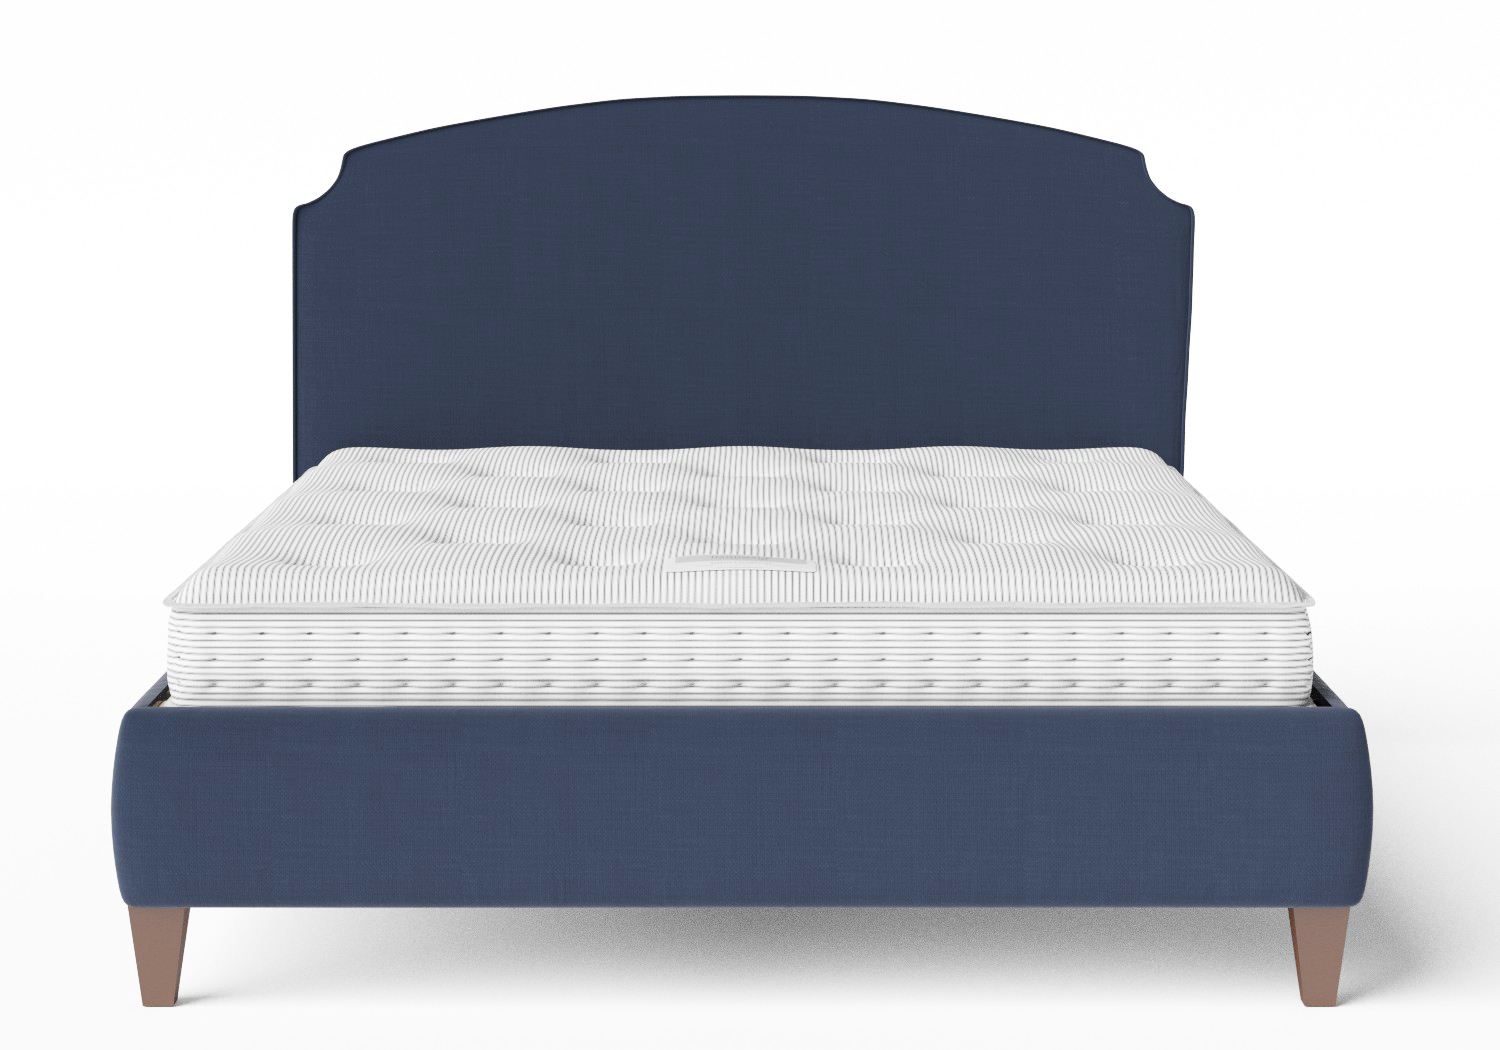 Lide Upholstered Bed in Navy fabric with piping shown with Juno 1 mattress